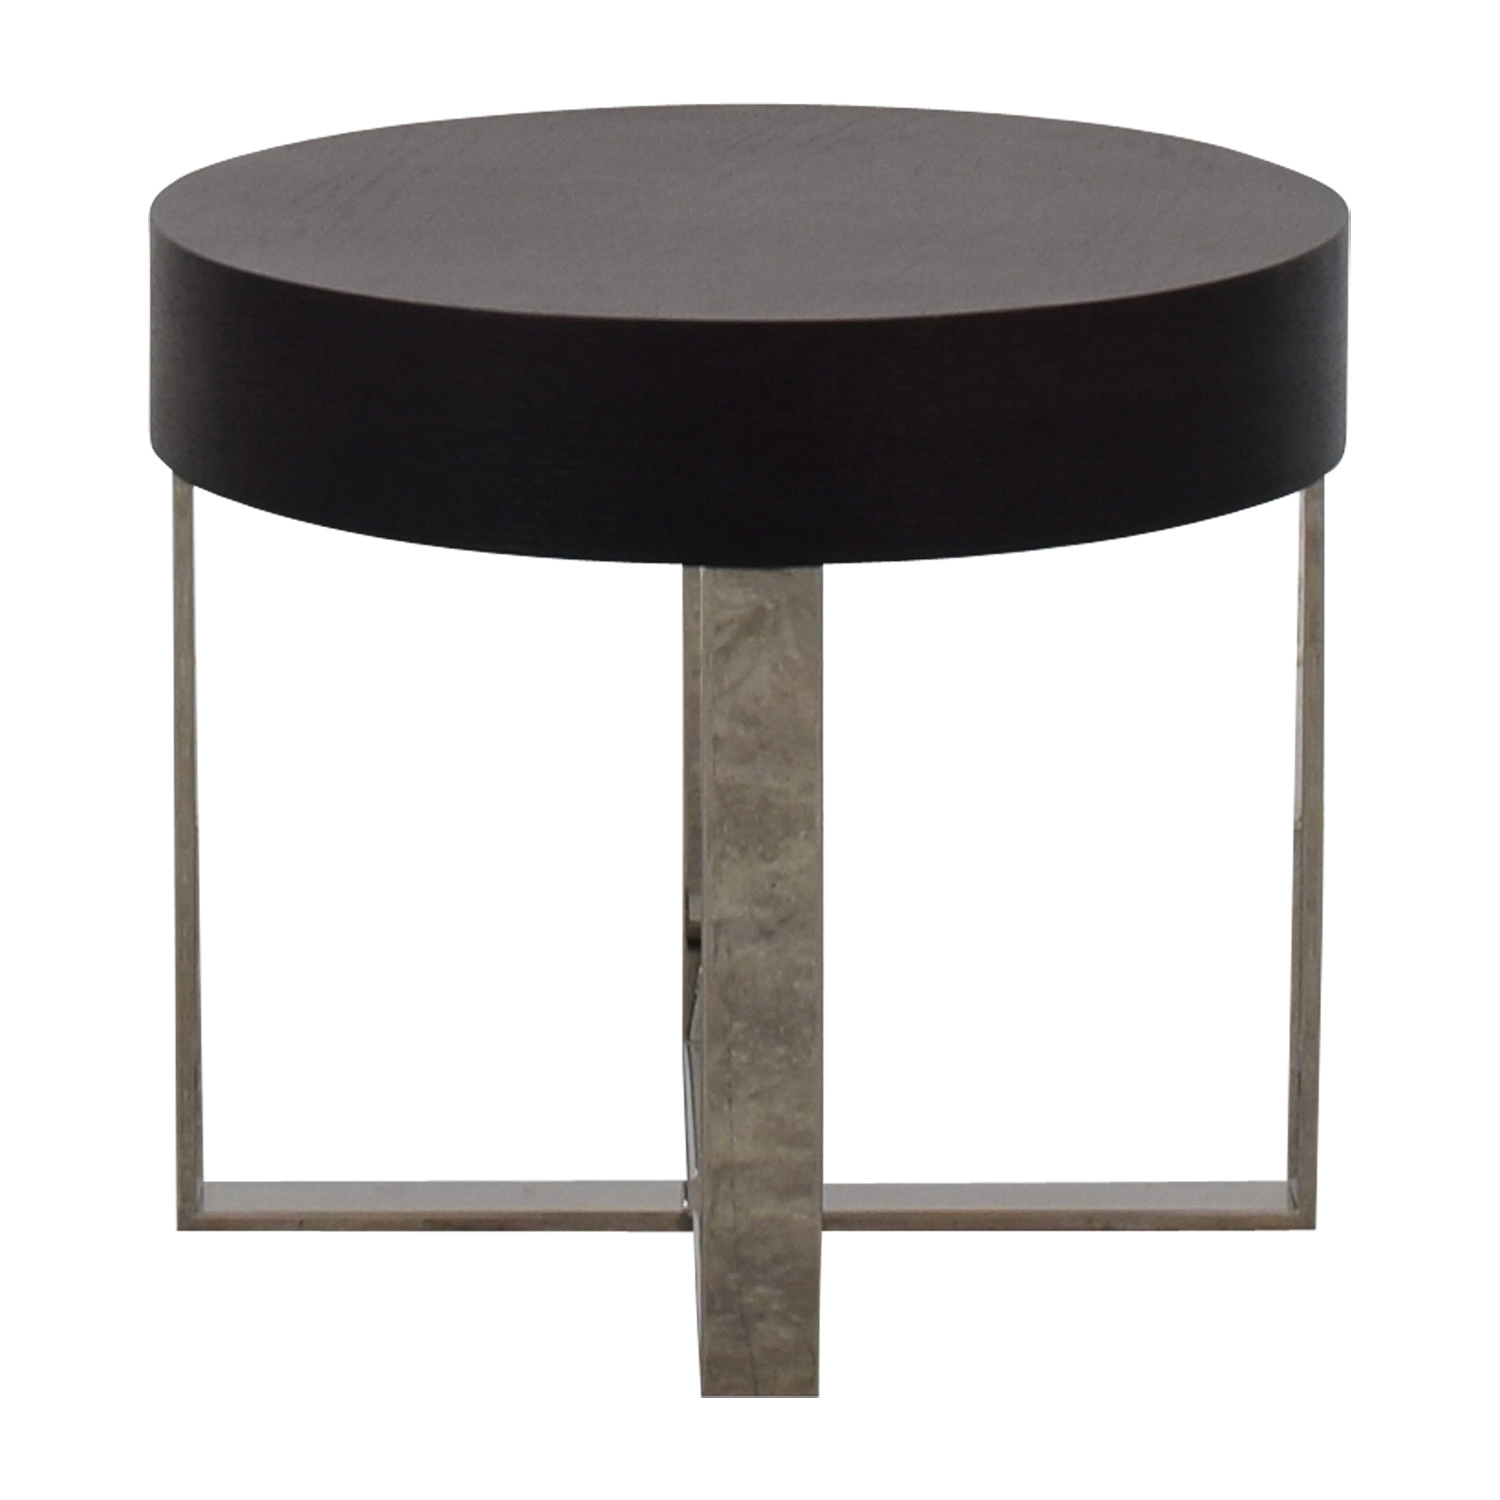 Modenature Modenature Round Side Table used